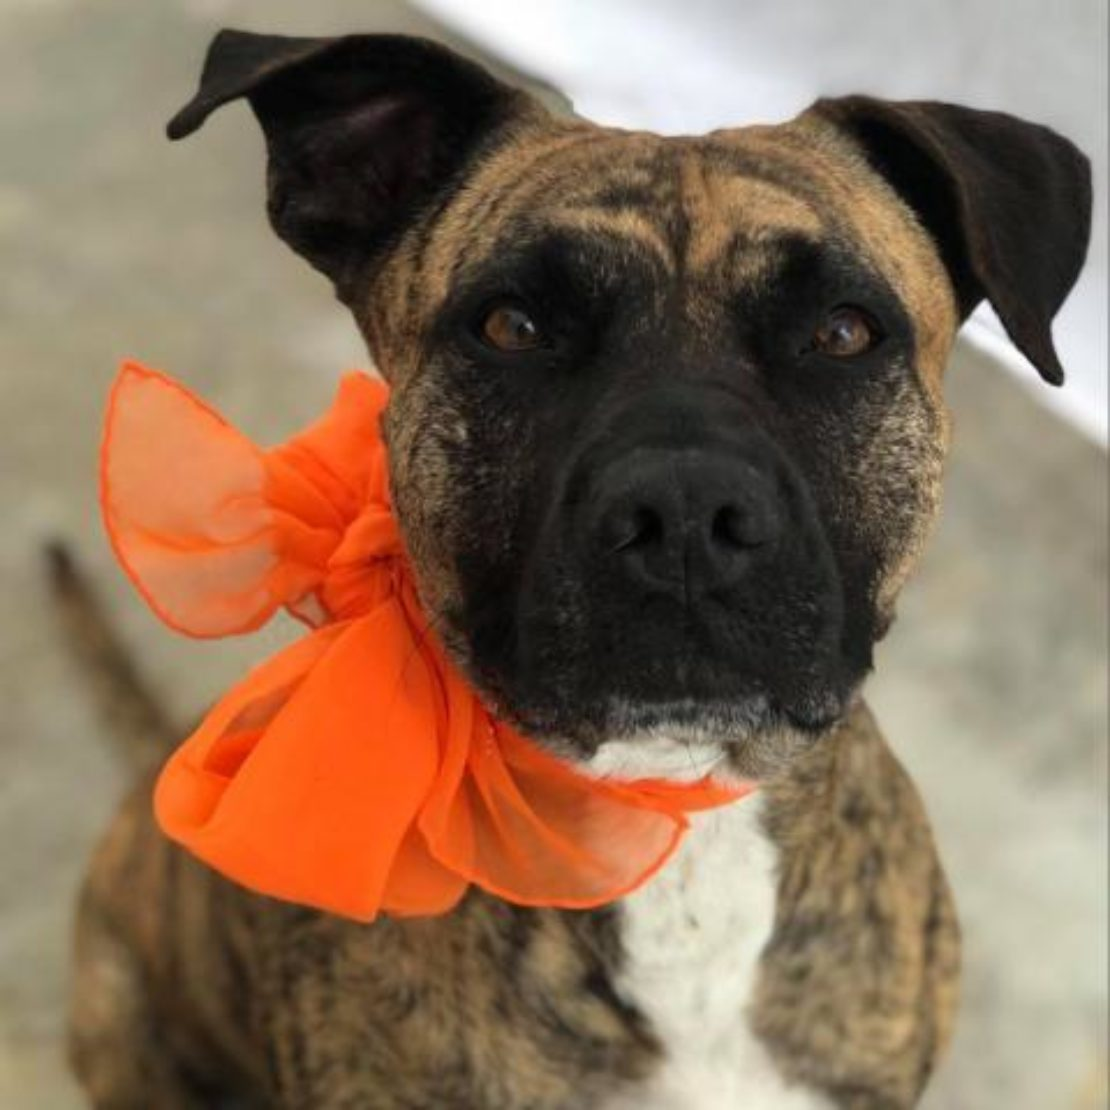 brown dog with black ears and muzzle white chest blaze and orange scarf looks at the camera.